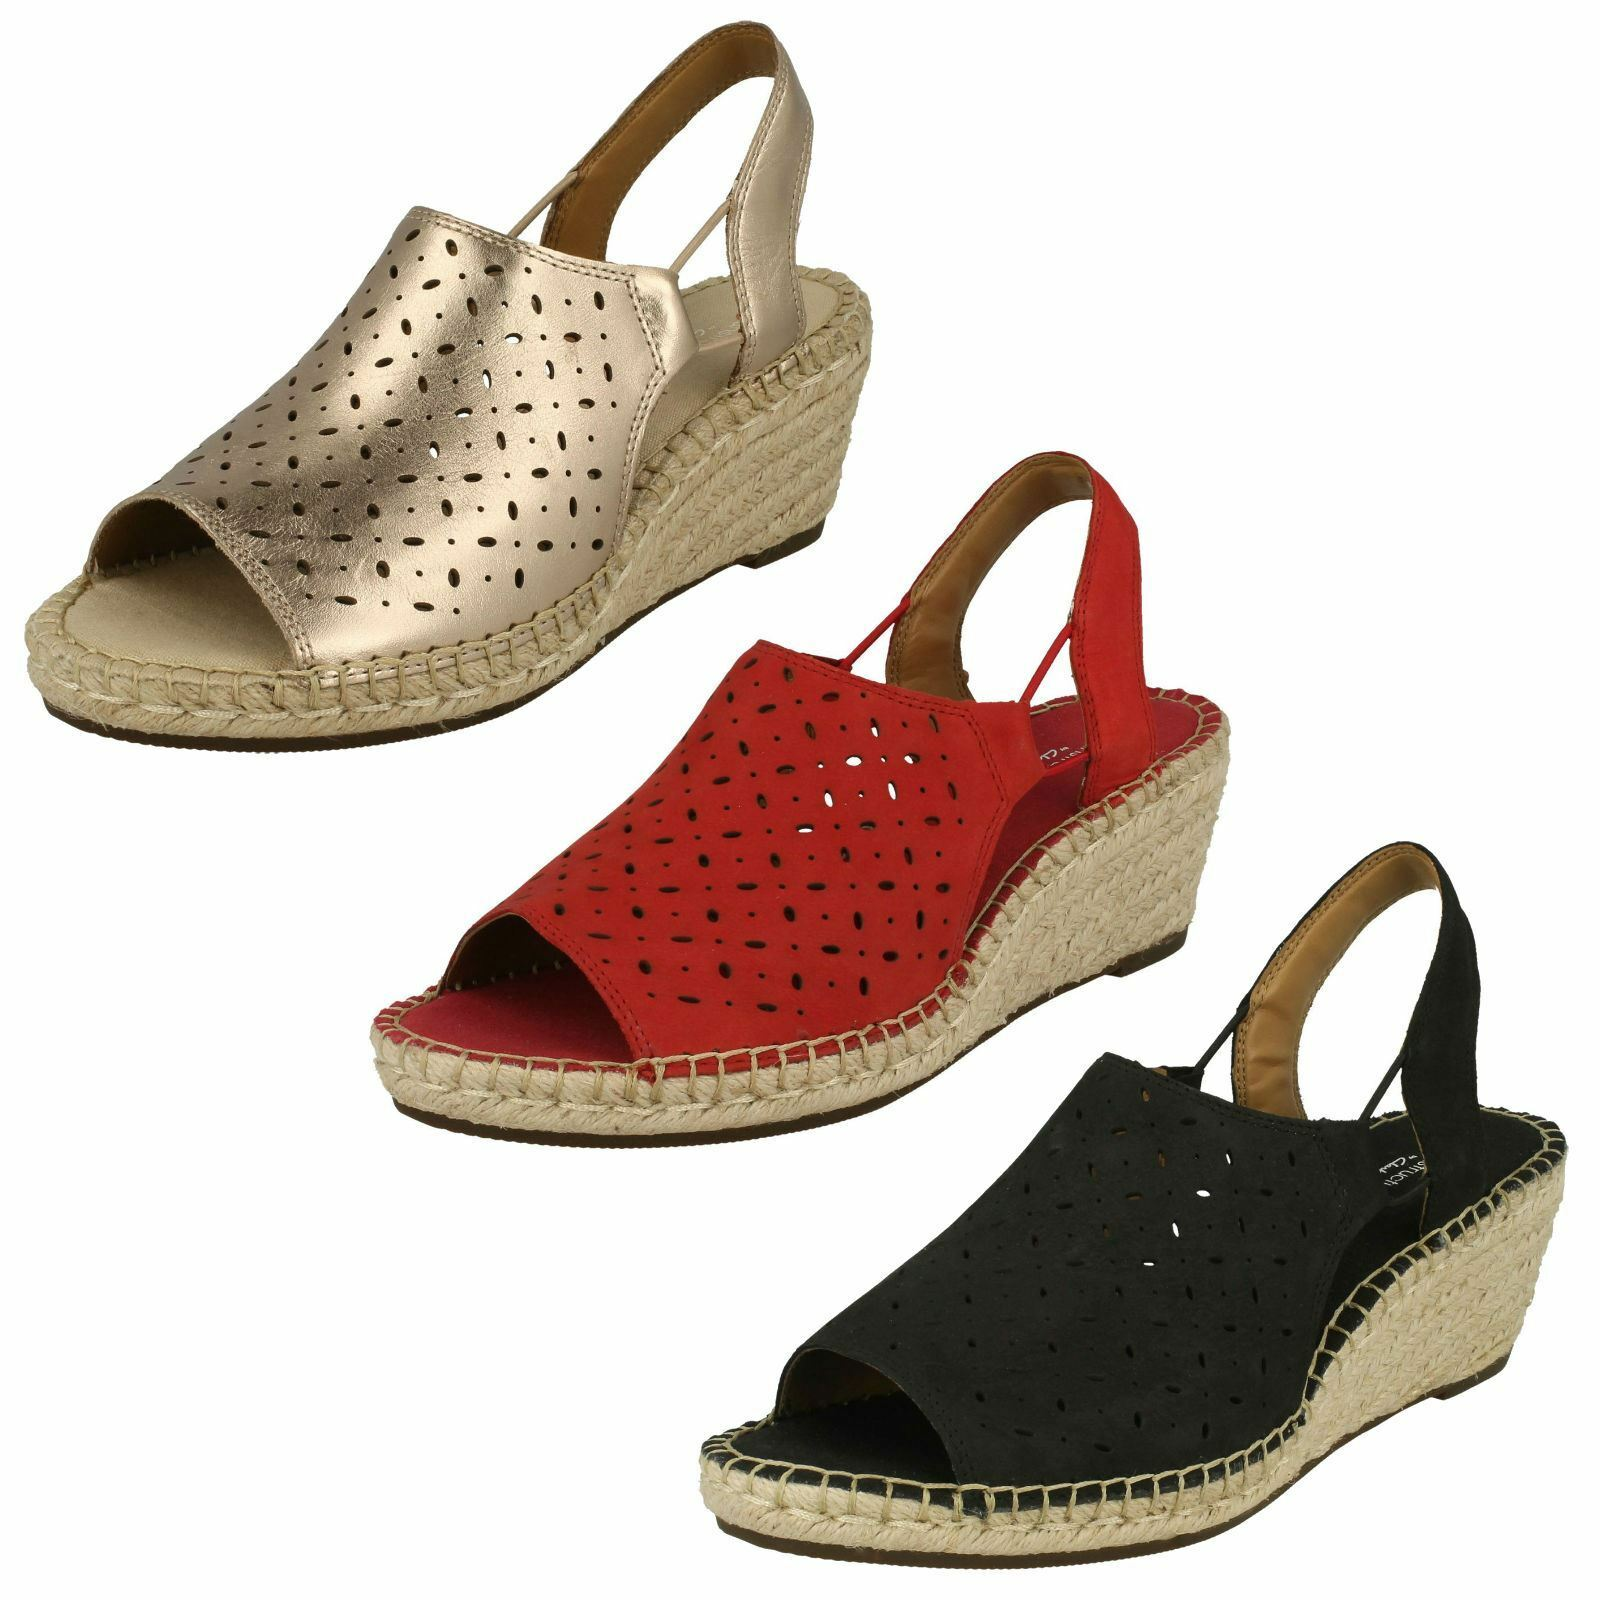 Último gran descuento Ladies Clarks Leather Nubuck Slingback Wedge Heel Sandals - Petrina Gail